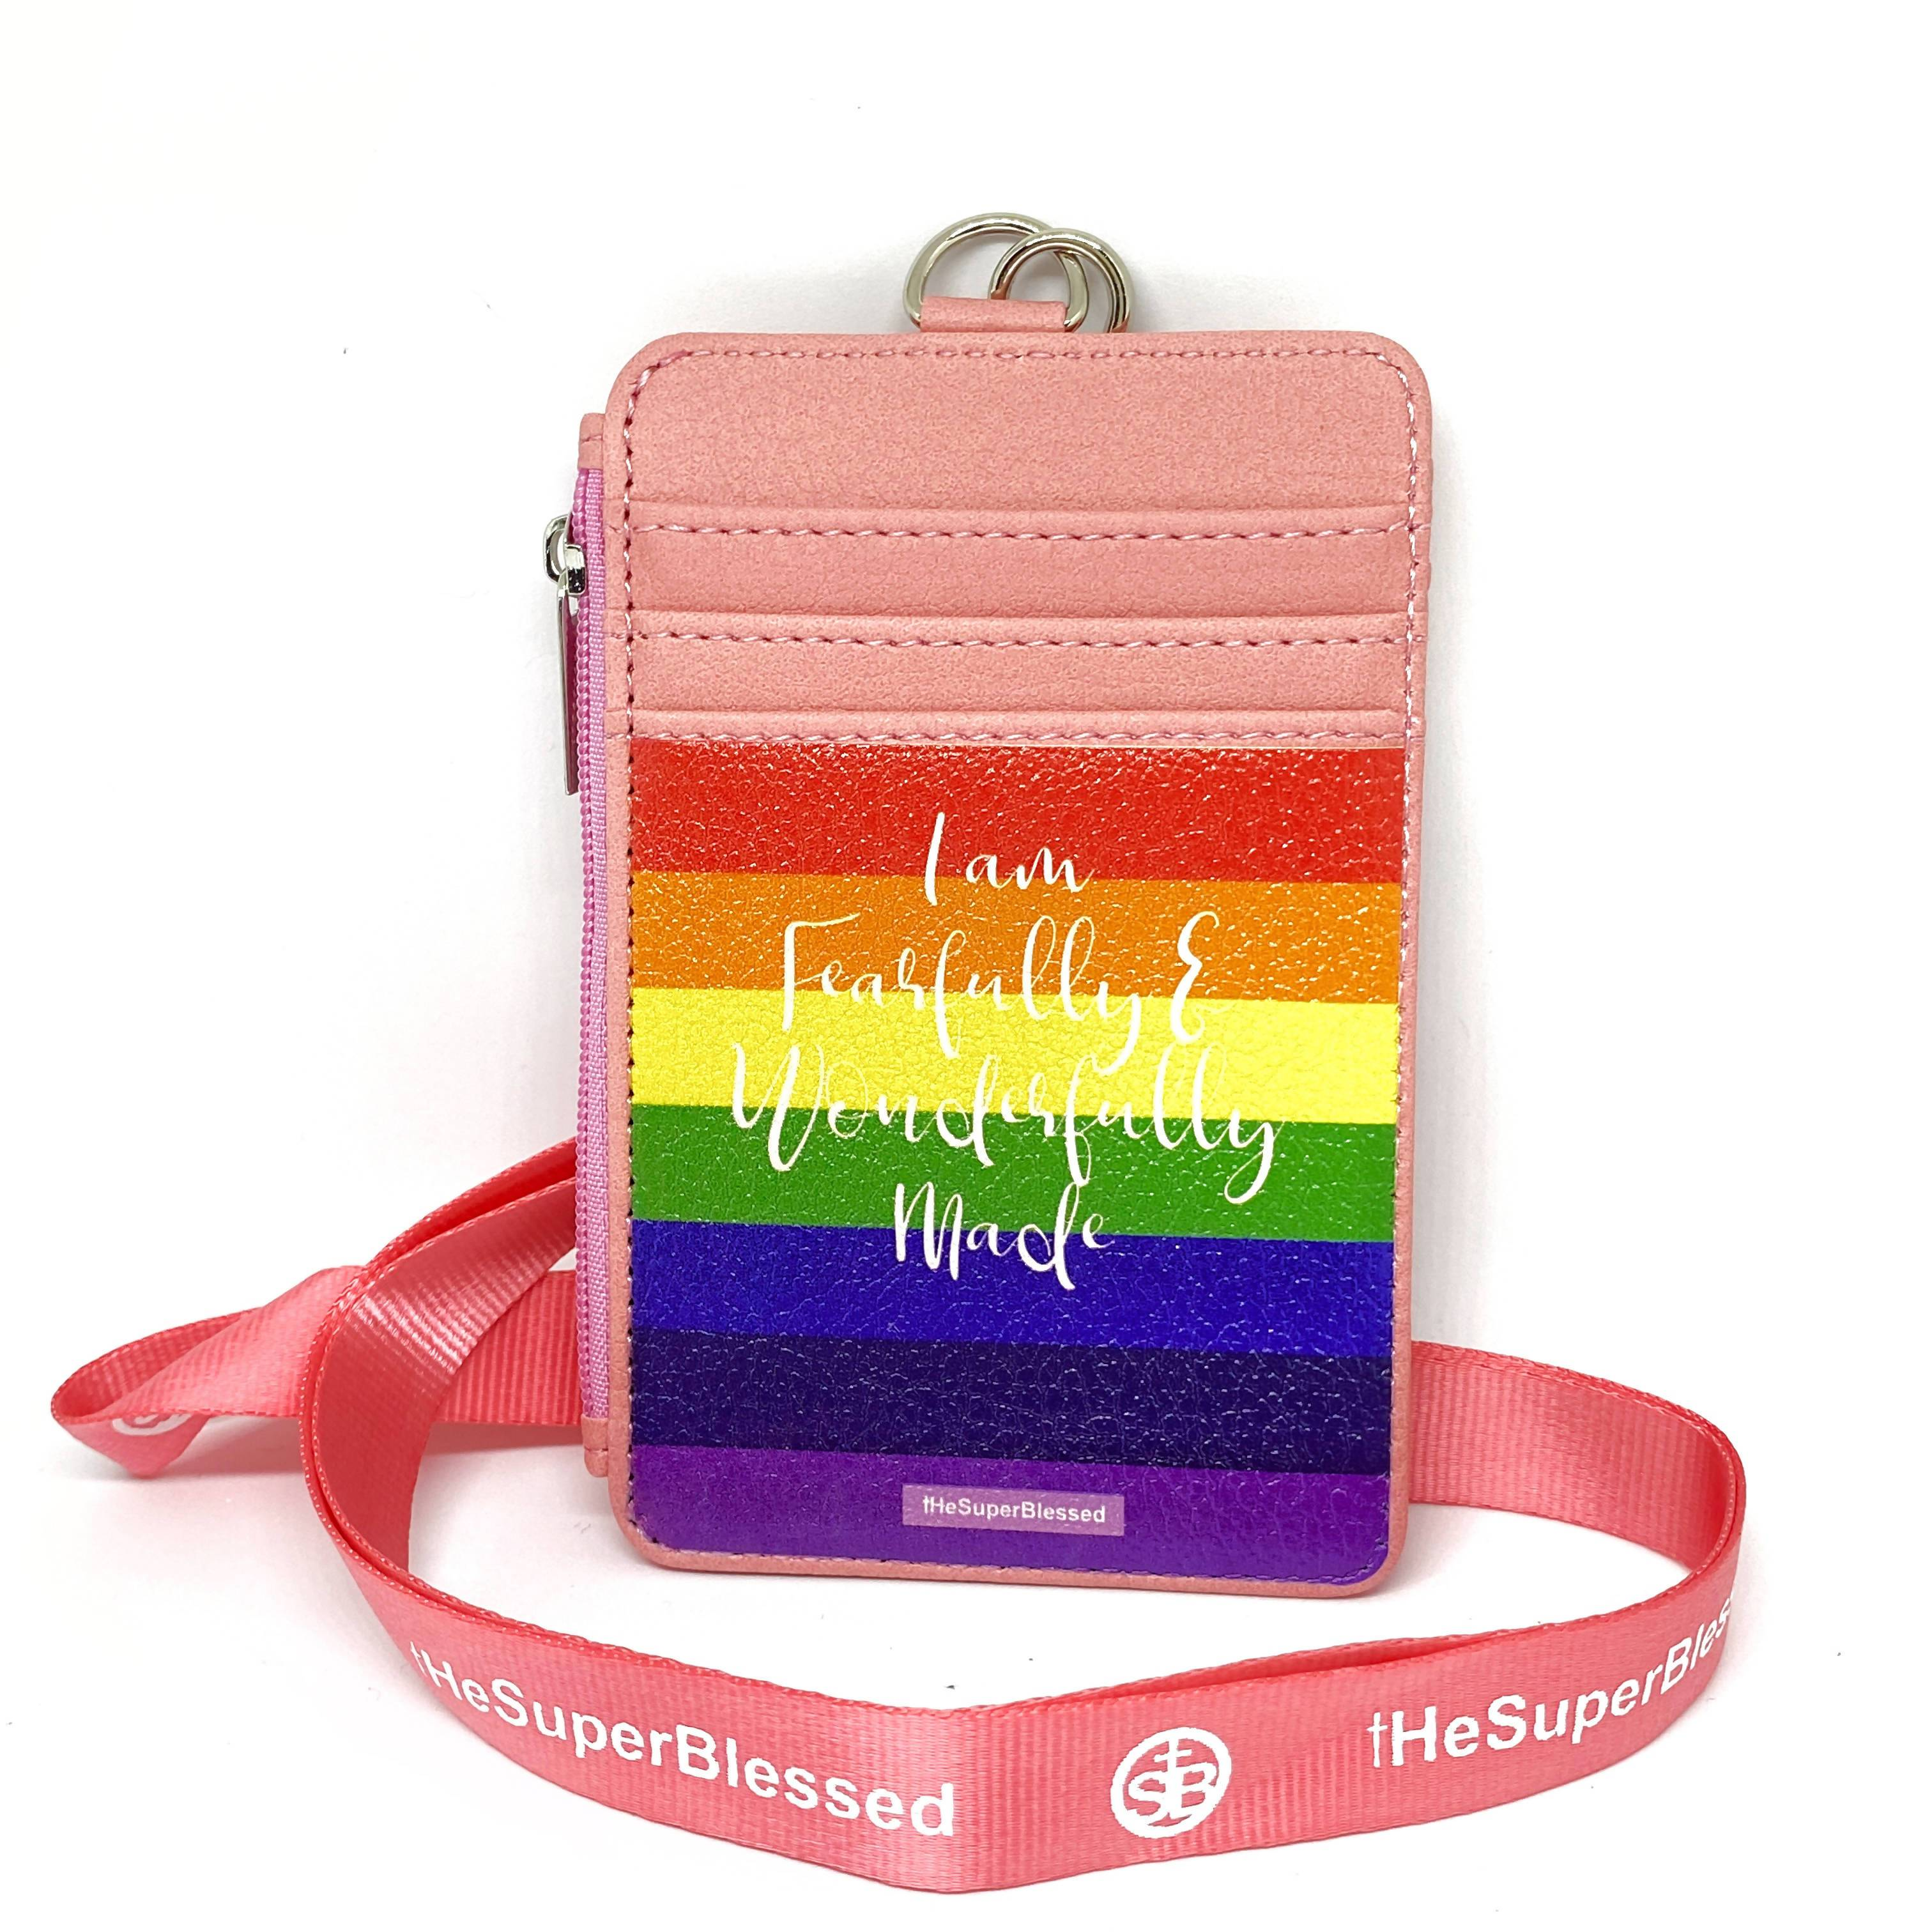 I am FearFully & Wonderfully Made Rainbow Pink Zipped Cardholder Coin Pouch Lanyard Set - Wallets - The Super Blessed - Naiise